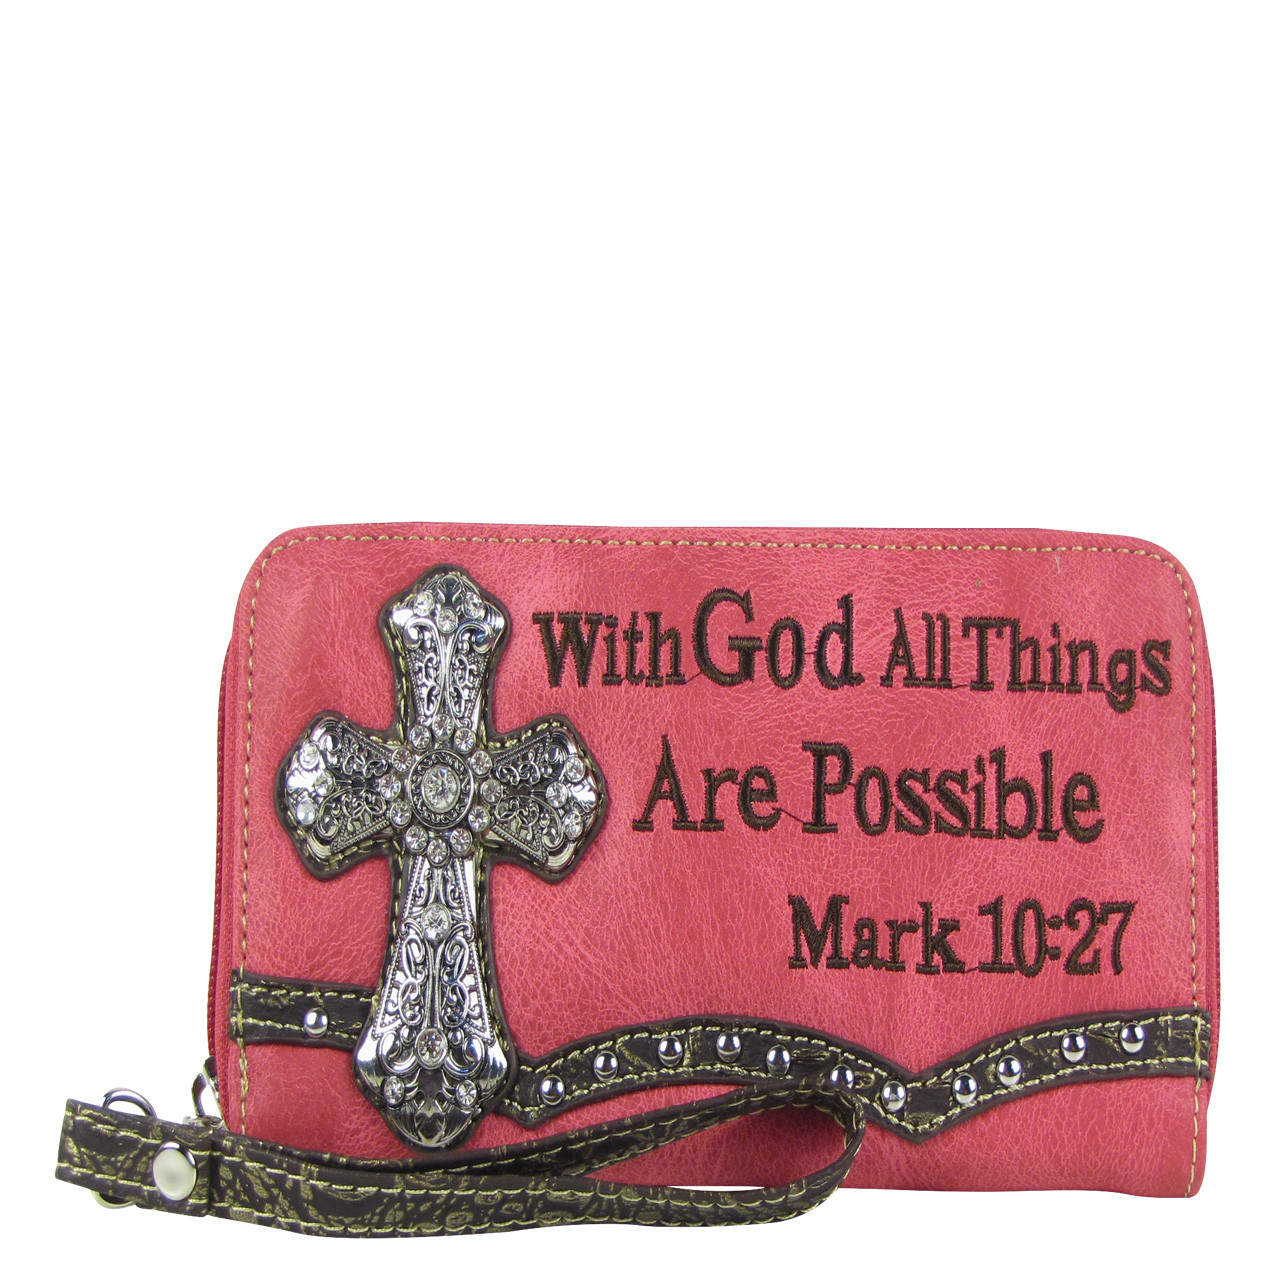 HOT PINK BIBLE VERSE RHINESTONE CROSS LOOK ZIPPER WALLET CB3-0405HPK